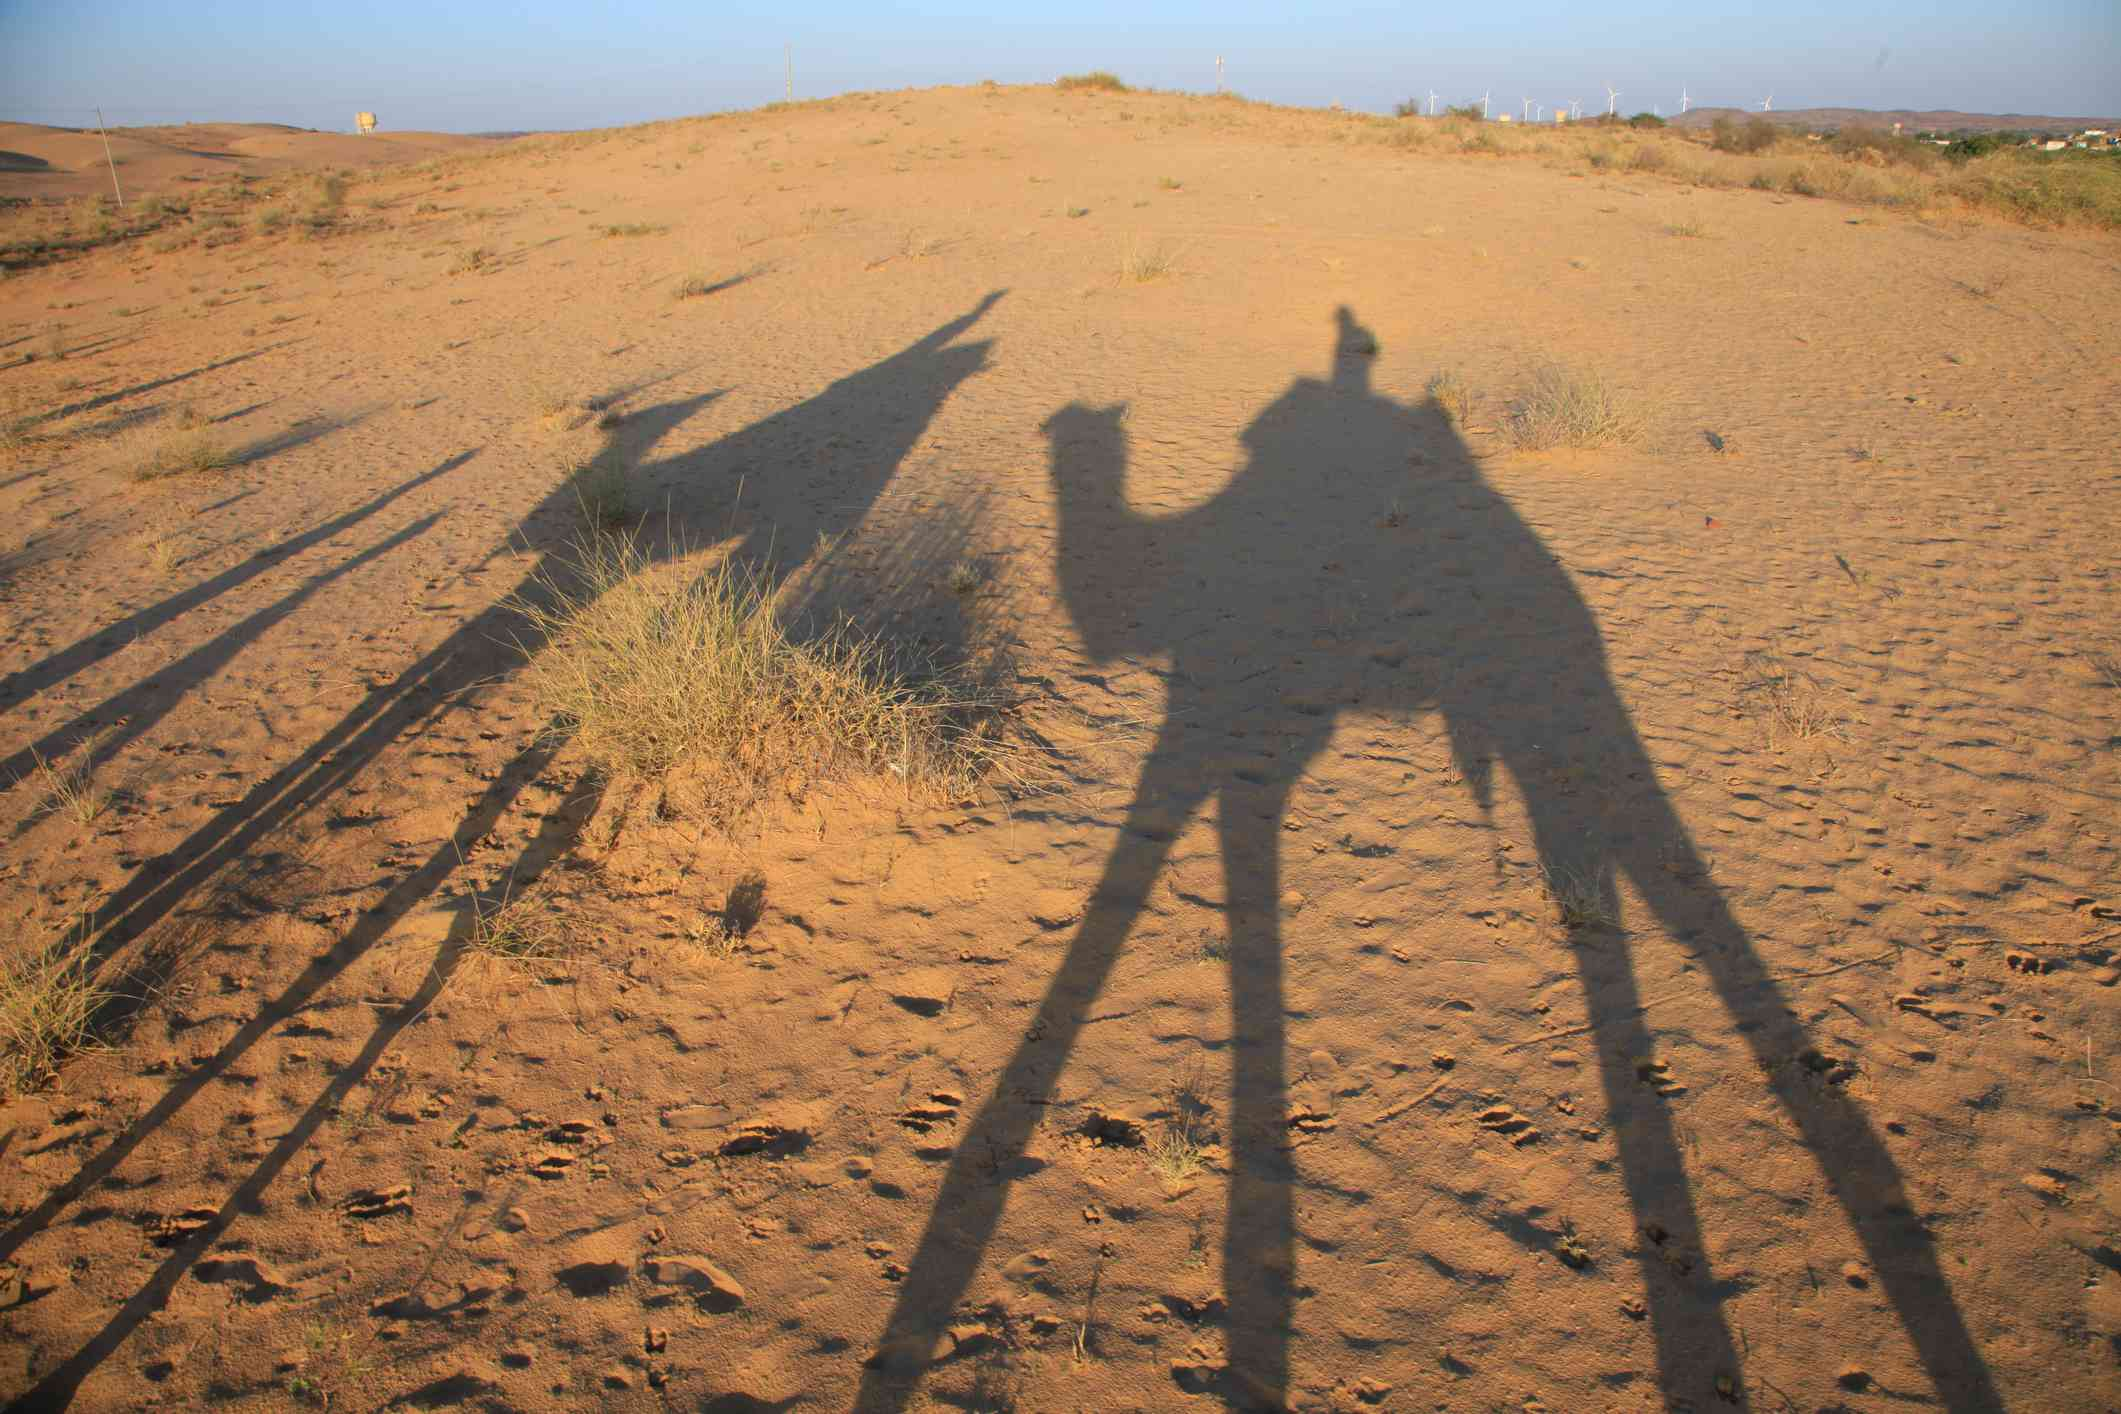 An image of a camel shadow in the sand dunes around Osian in India's Rajasthan state.